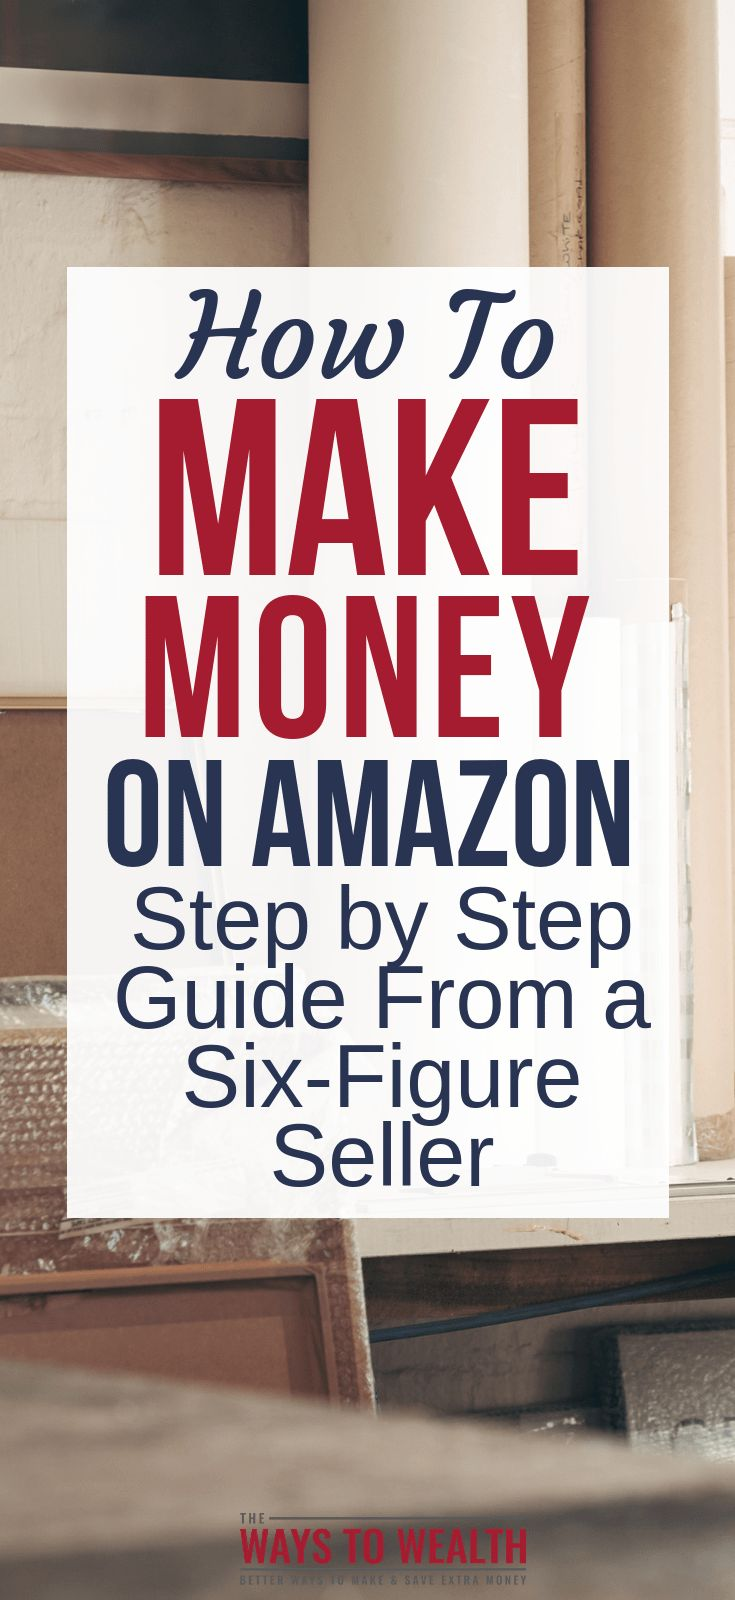 How To Make Money On Amazon (The Definitive Guide 2019) – Rolf Müller